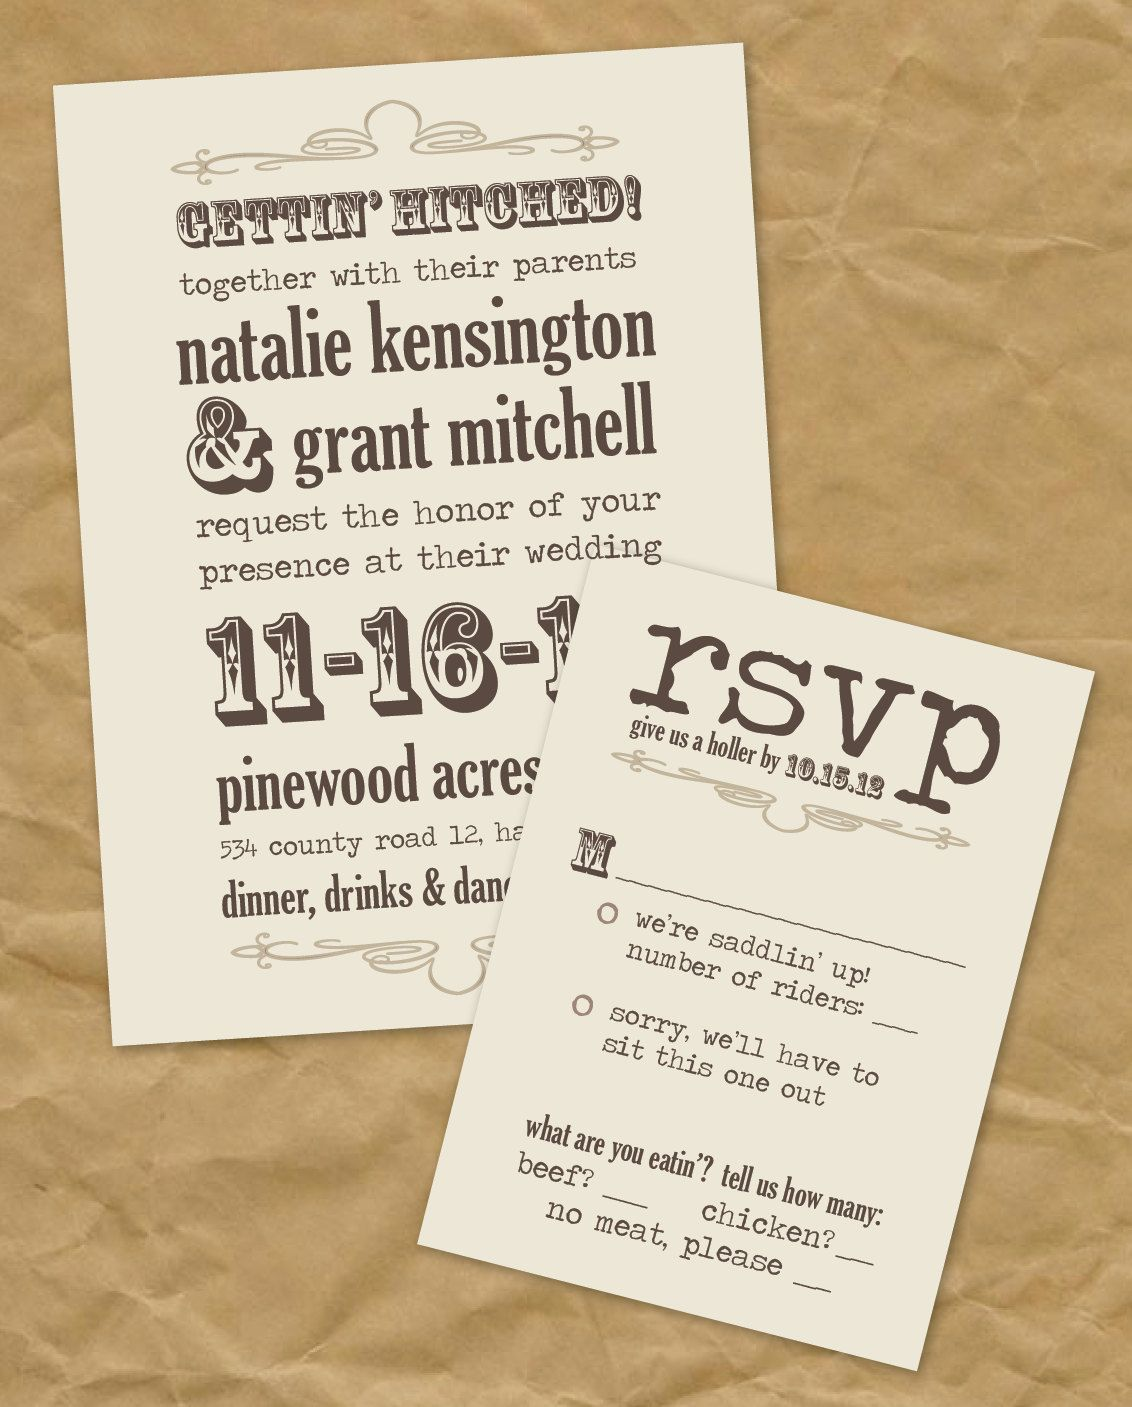 Western wedding invitations | Wedding ideas | Pinterest | Wedding ...